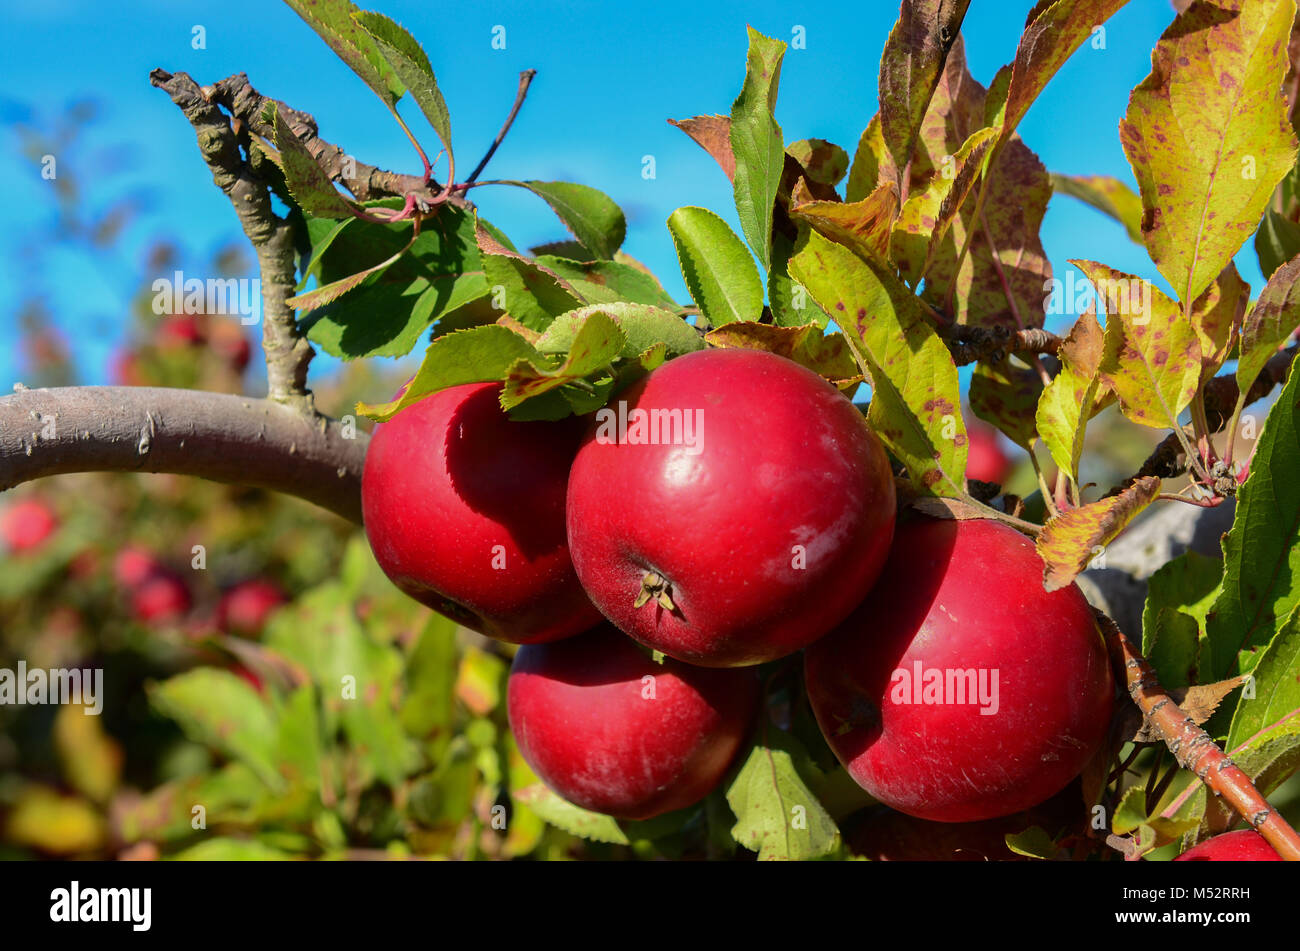 Red Delicious apples on the branch at Goolds Orchard, a pick your own apple picking farm in Castleton, New York, Stock Photo